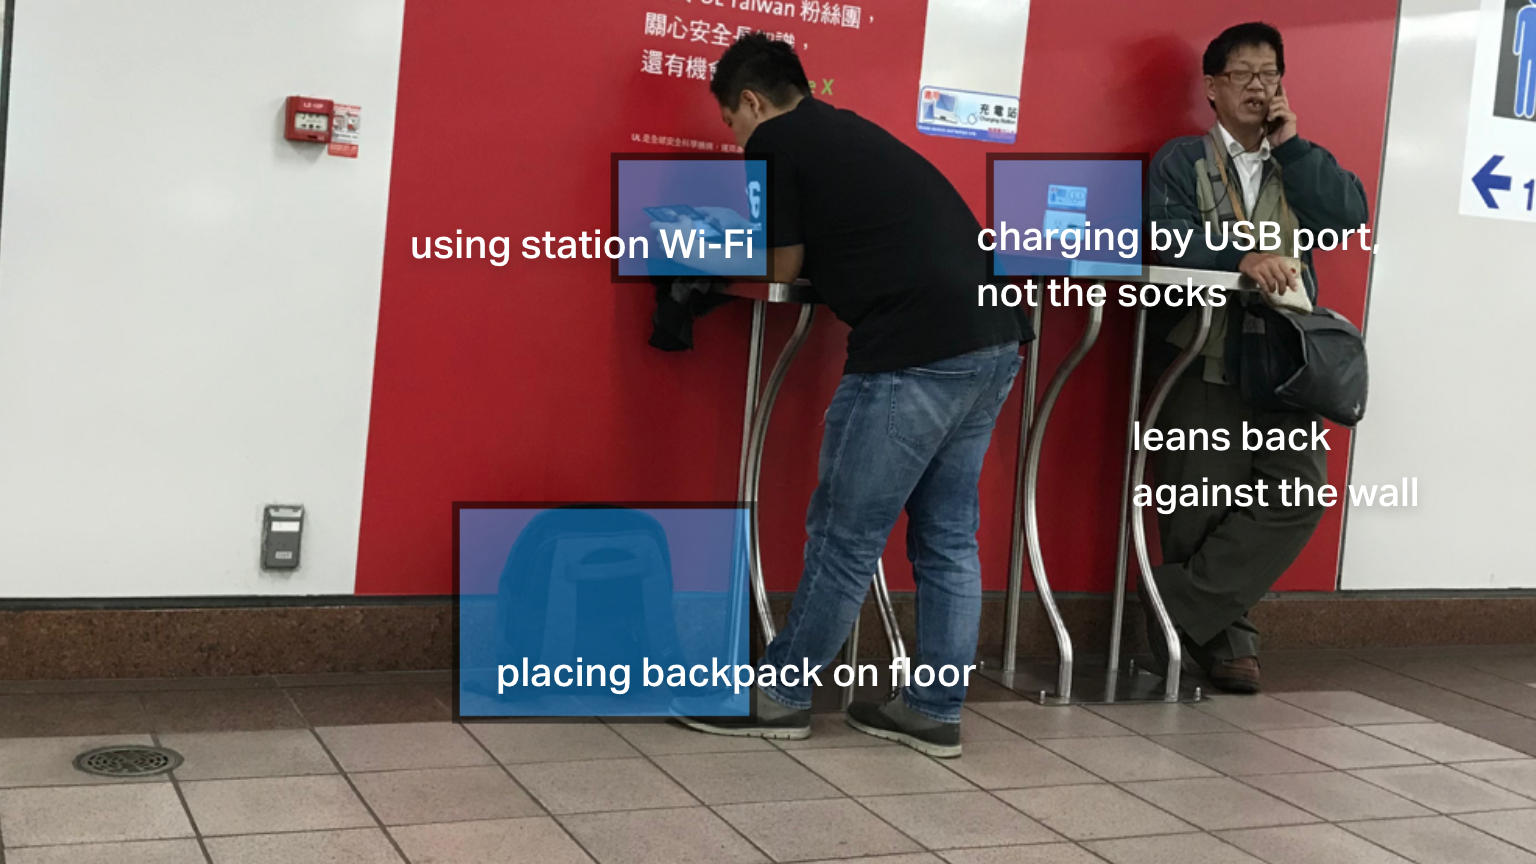 How people using the charging station